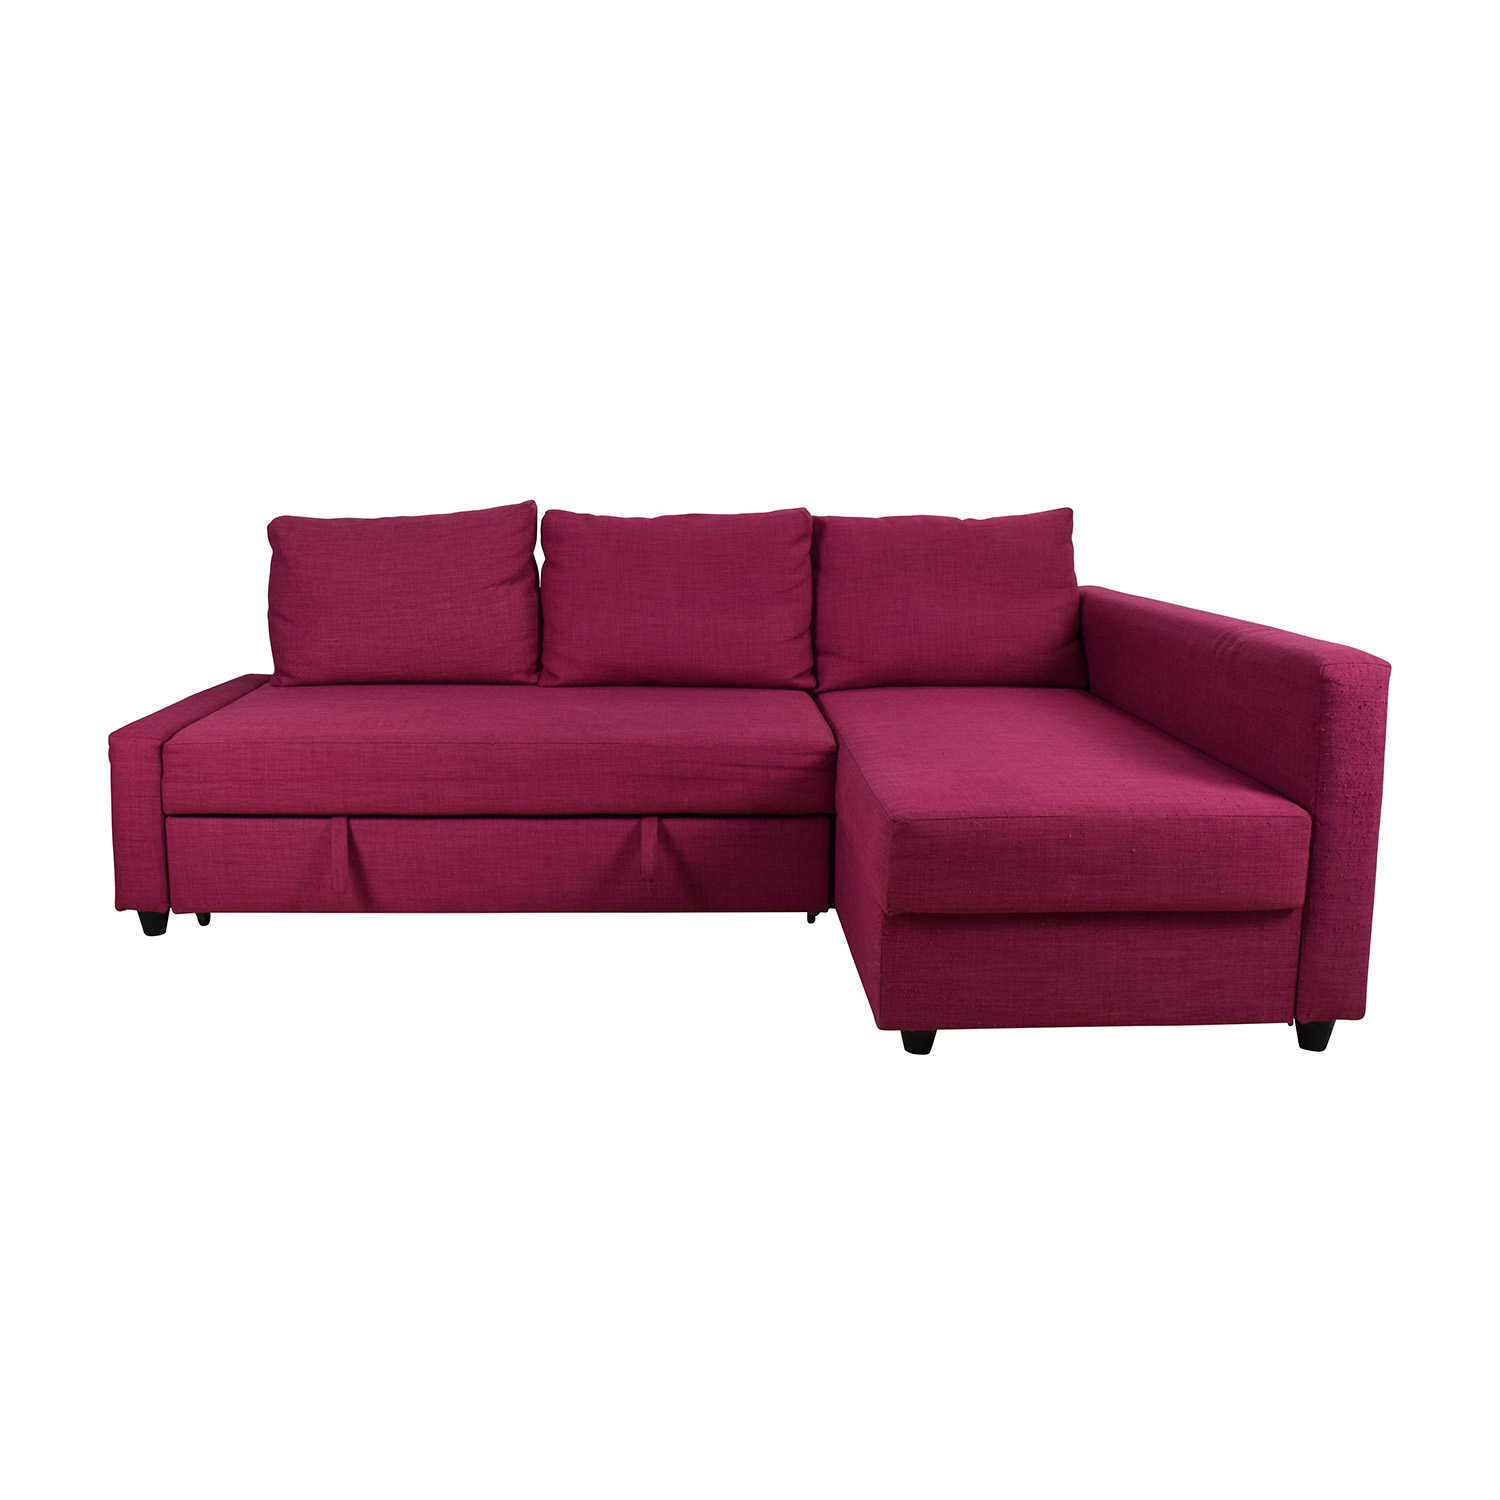 IKEA IKEA FRIHETEN Pink Sleeper Sofa Sectionals